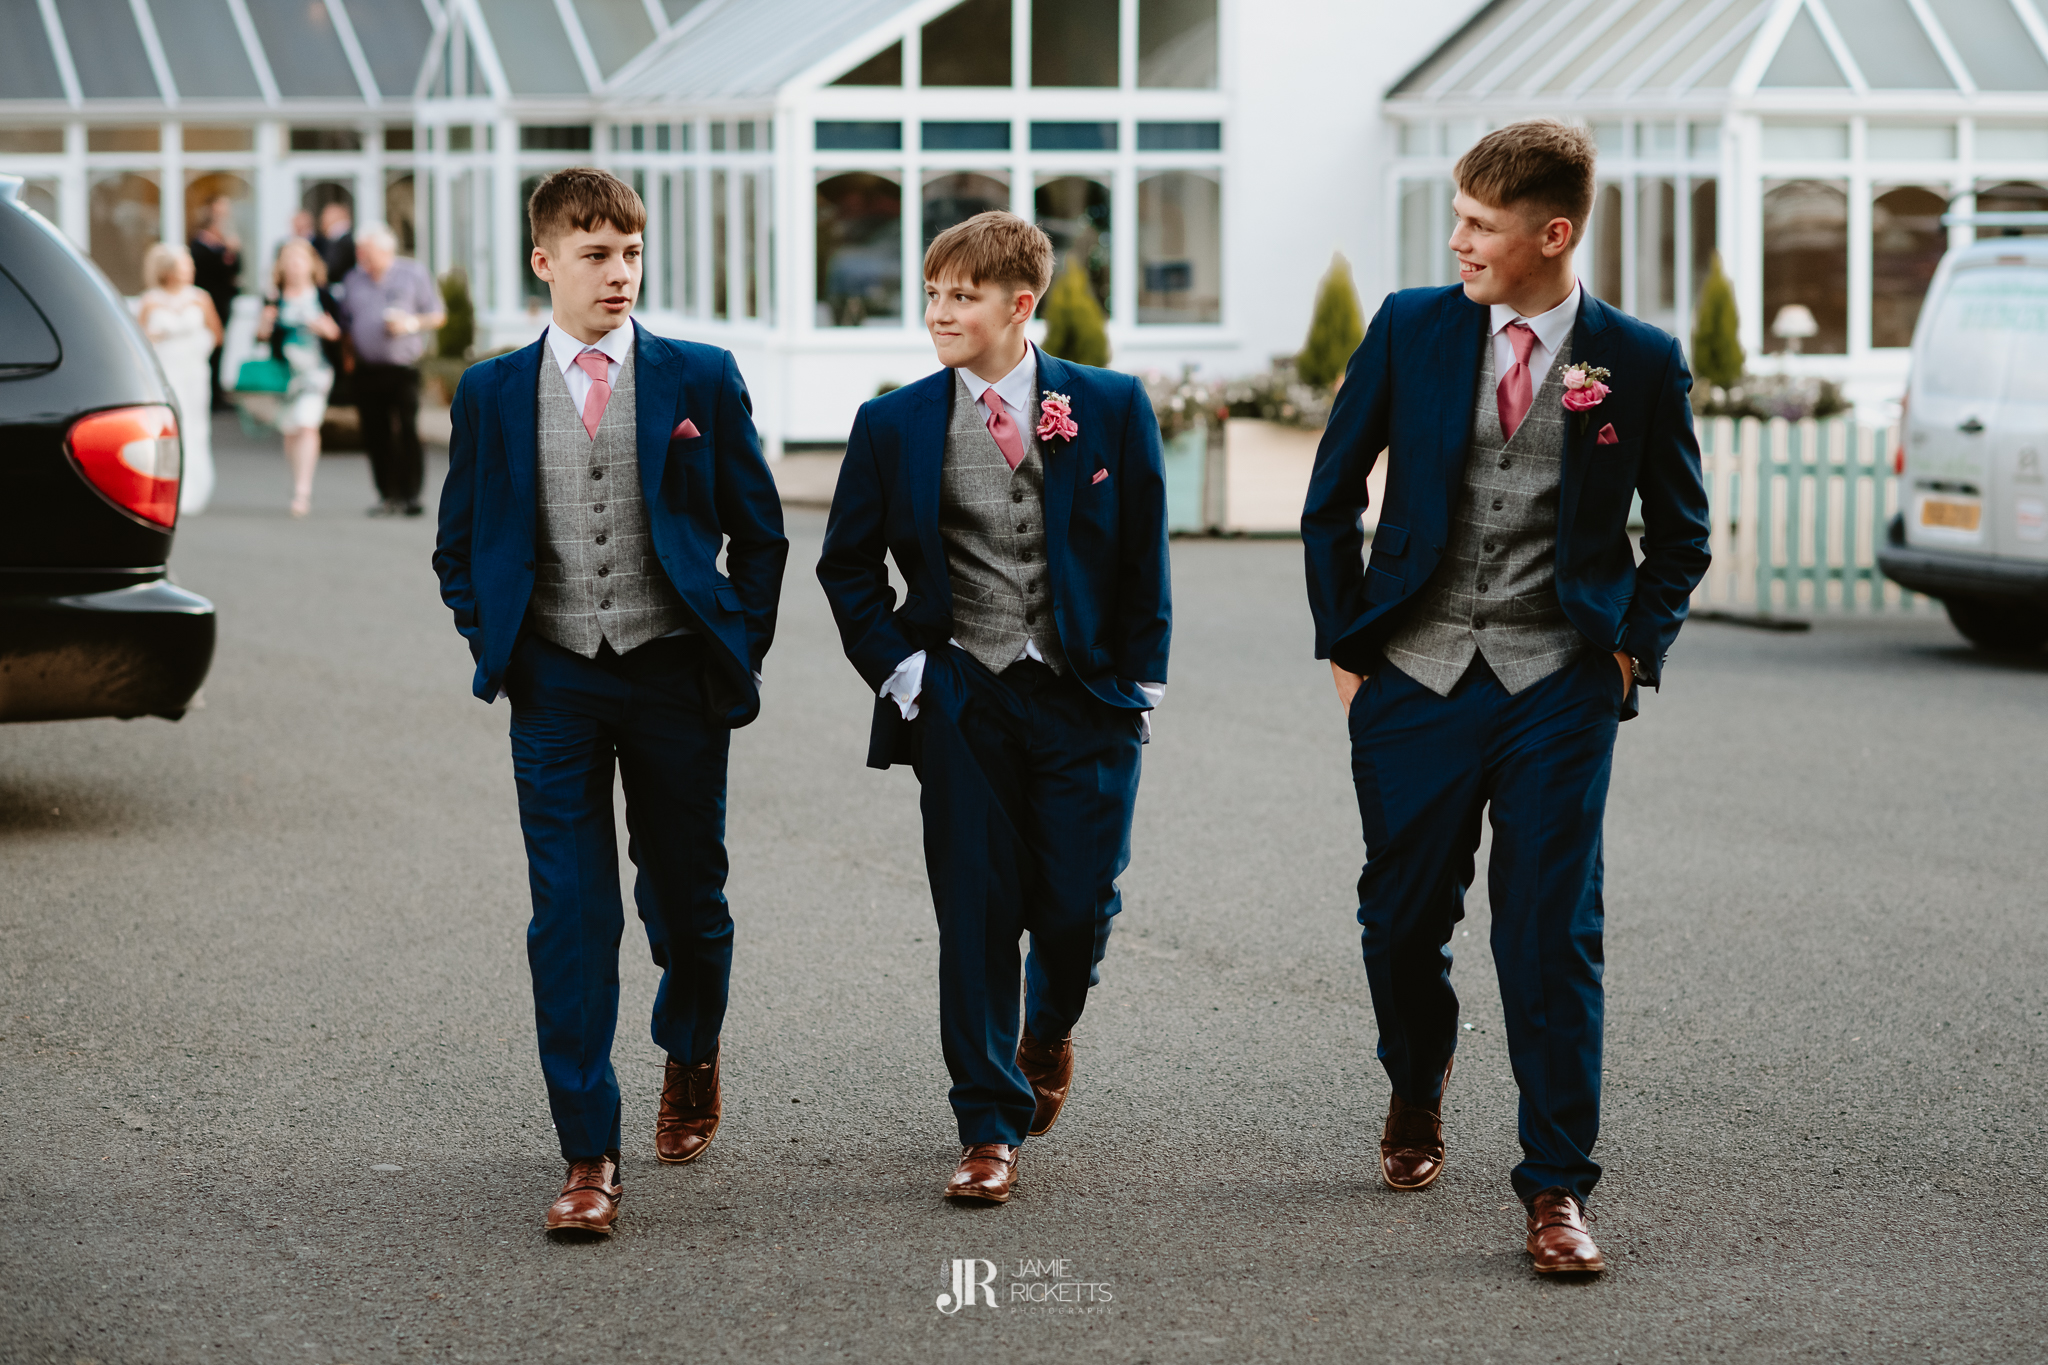 Wroxeter-Hotel-Wedding-Photography-In-Shropshire-By-Shropshire-Wedding-Photographer-Jamie-Ricketts-193.JPG